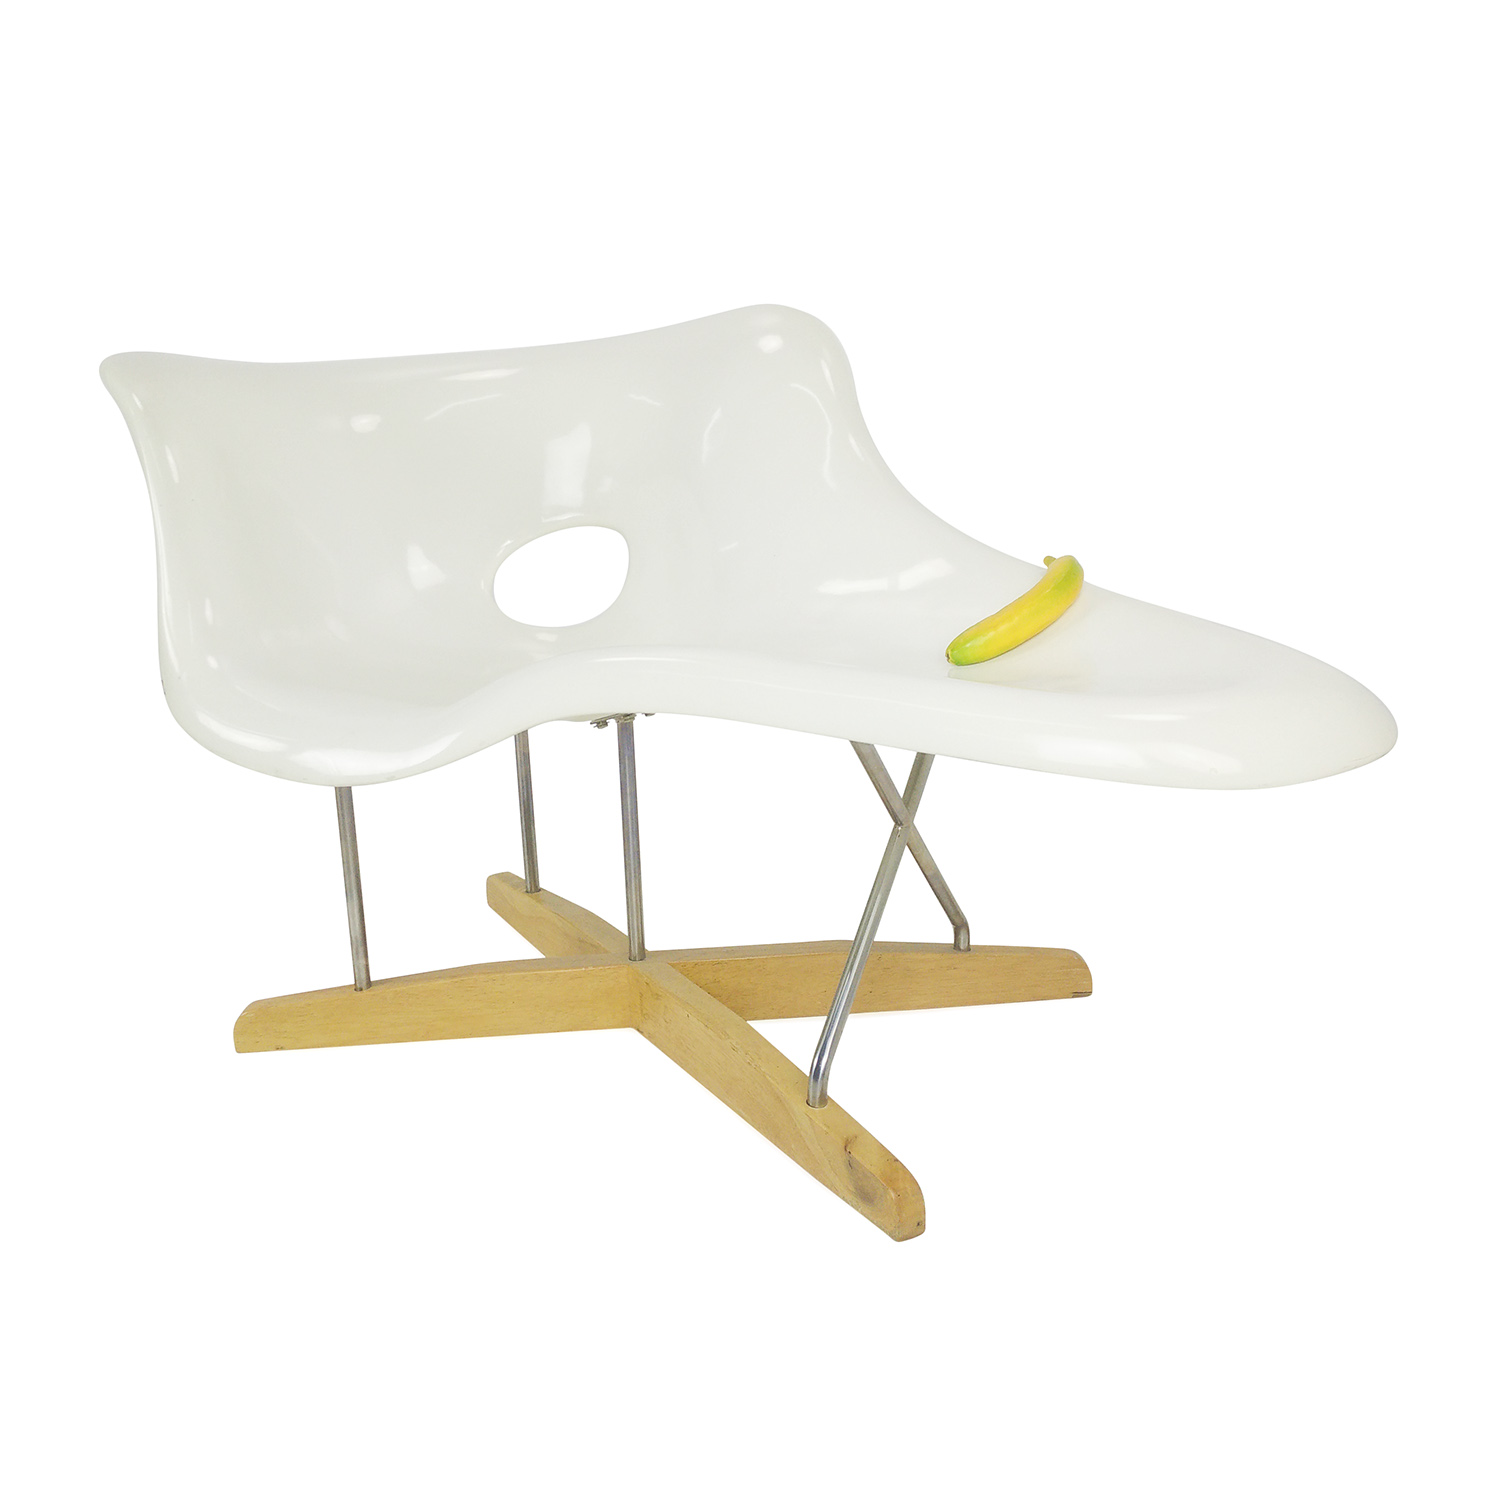 63 off eames replica of la chaise la chaise replica for Reproduction chaise eames